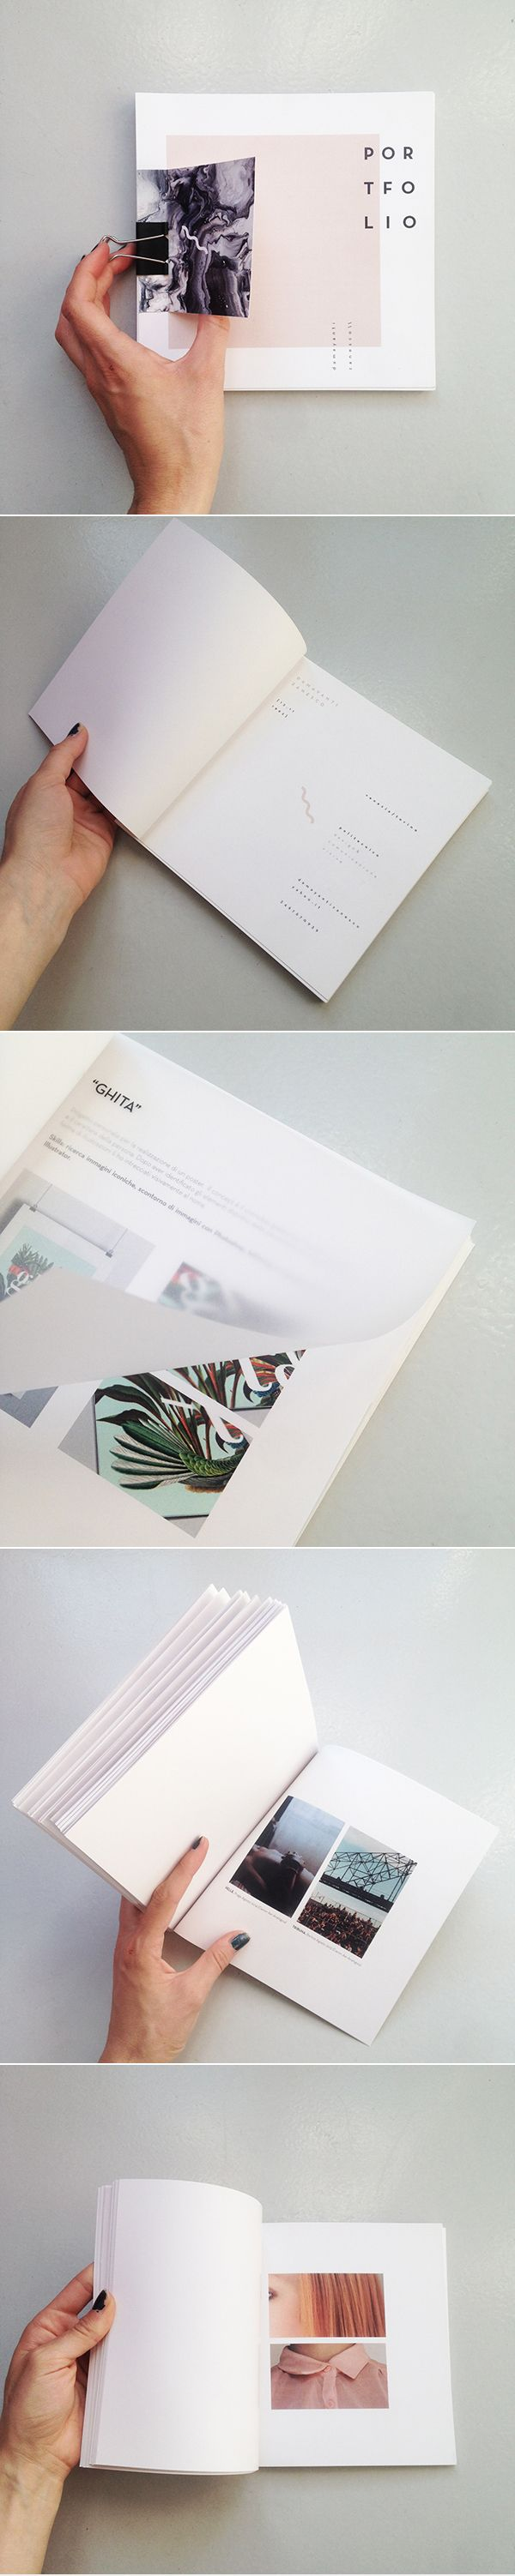 8x8 size pages are kind of different. Still makes mailing easy. Practical enough?